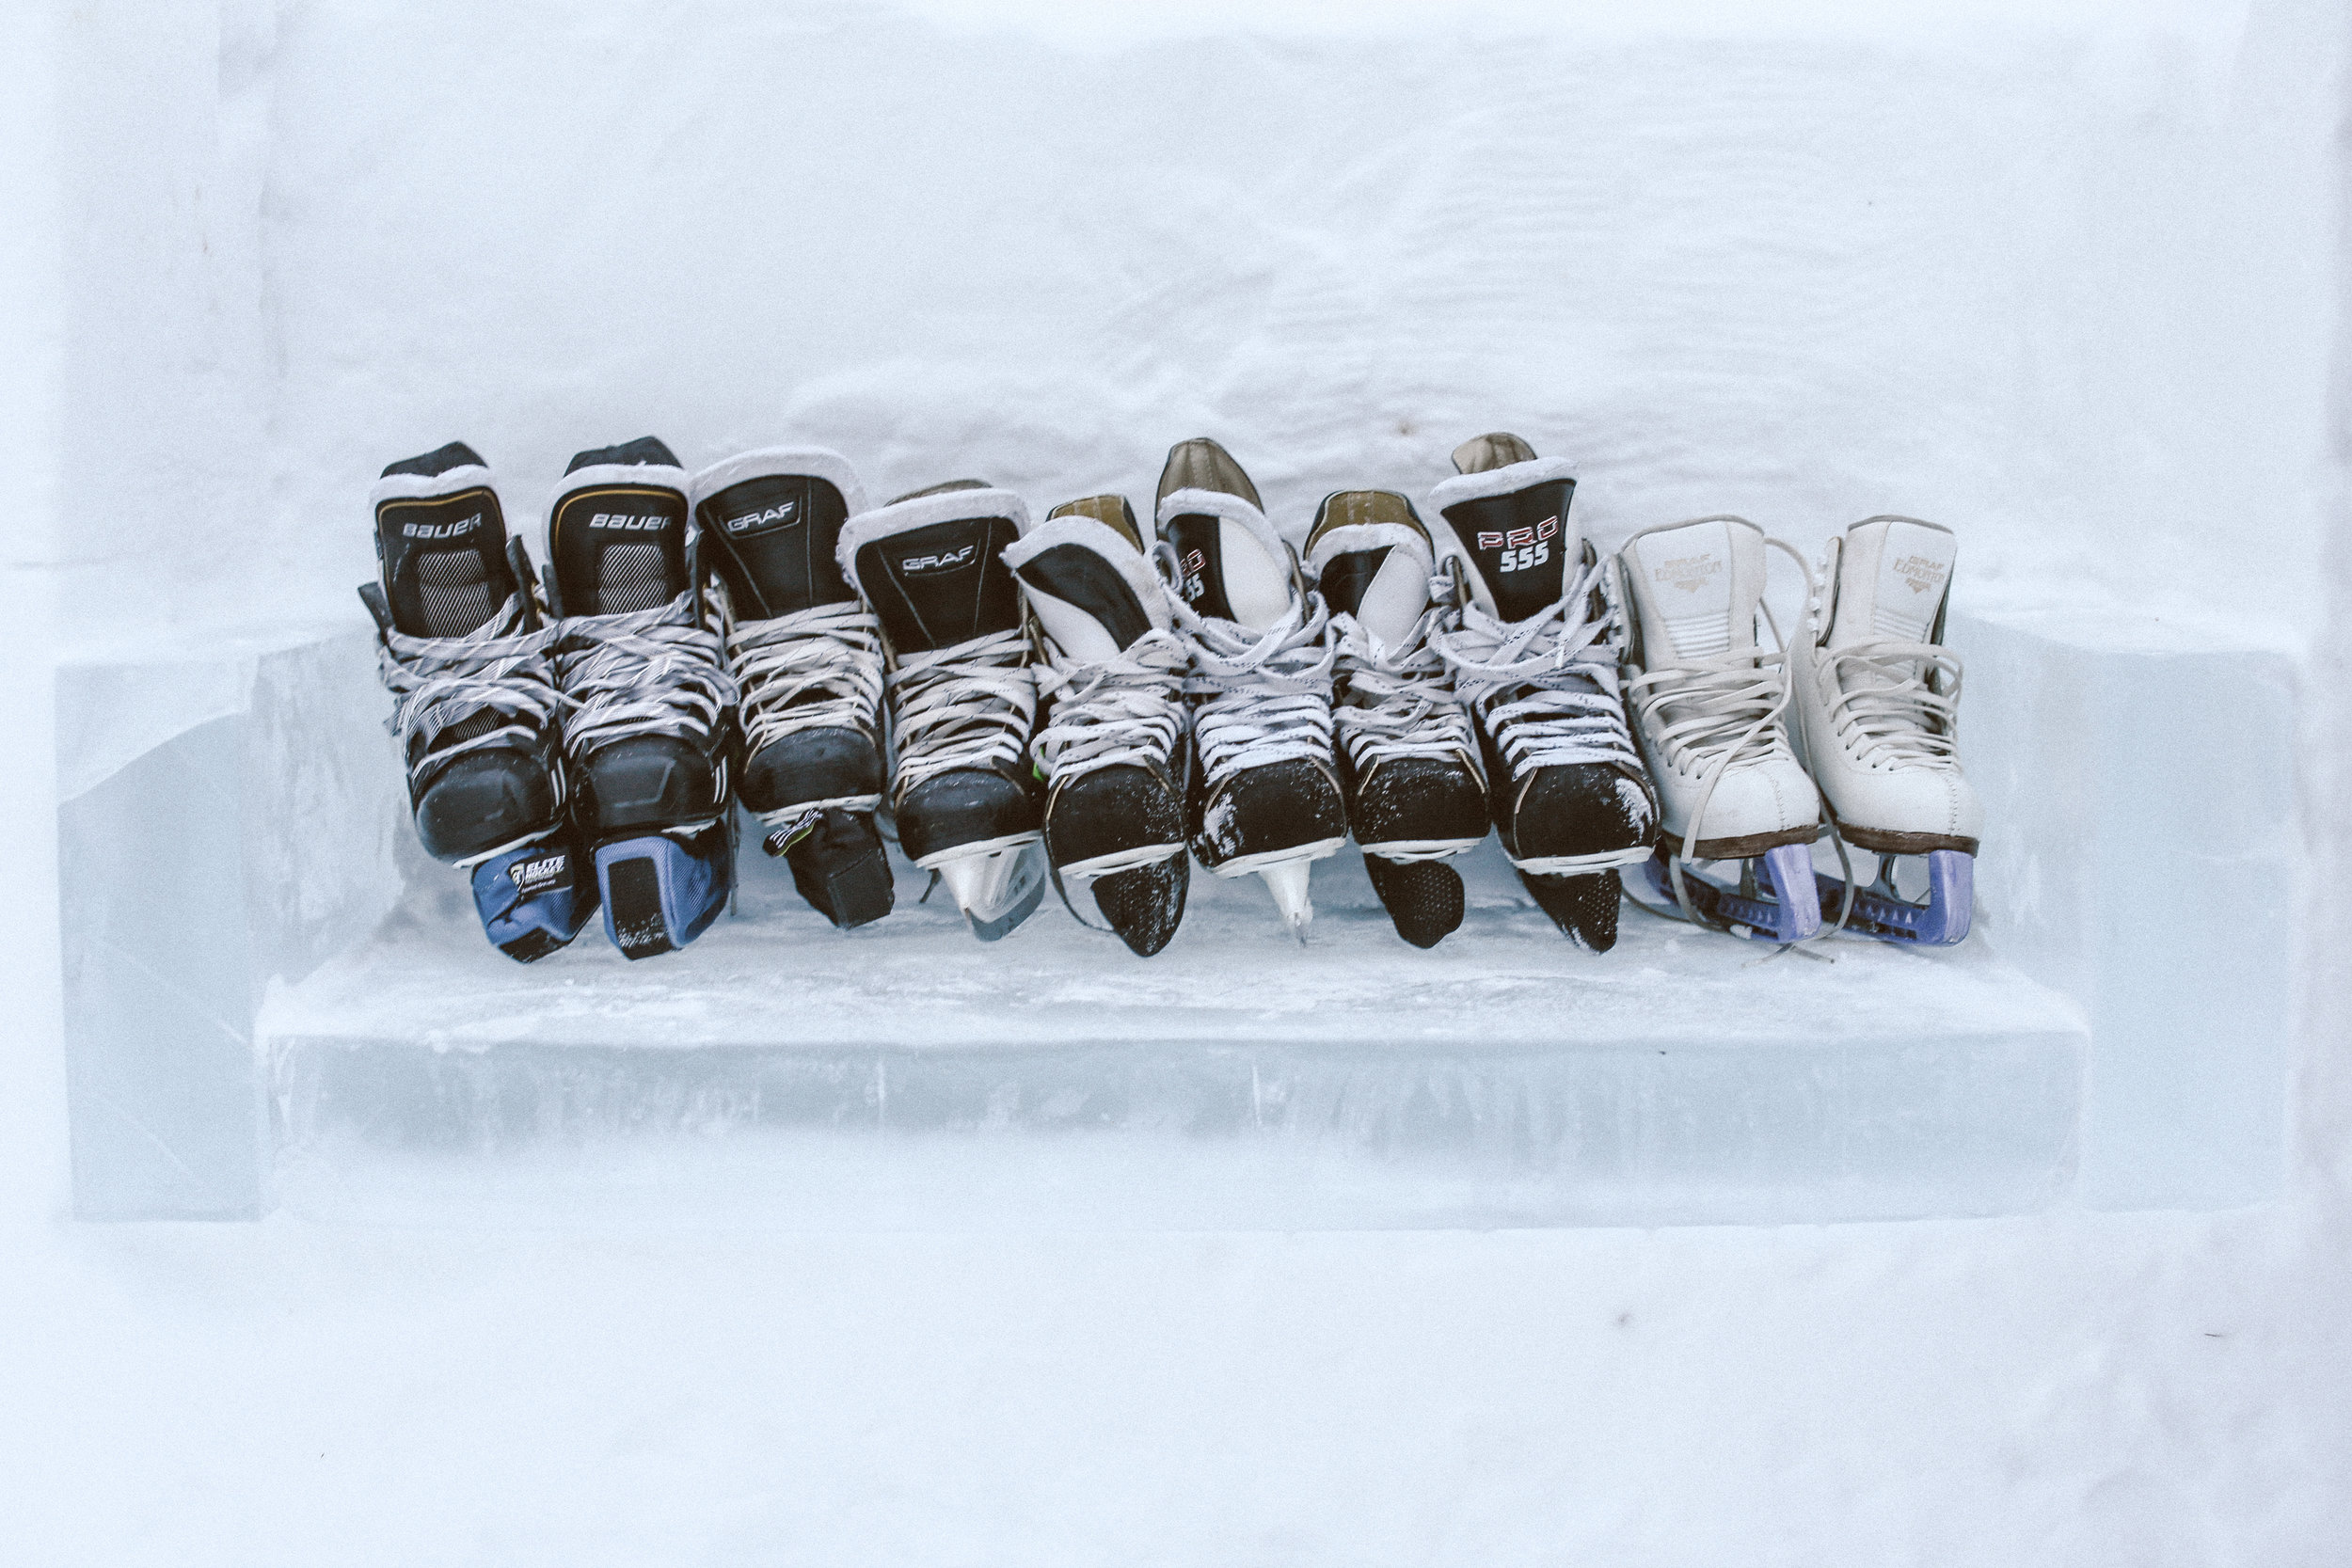 Our Skates lined up on an ice bench inside the Ice Bar.